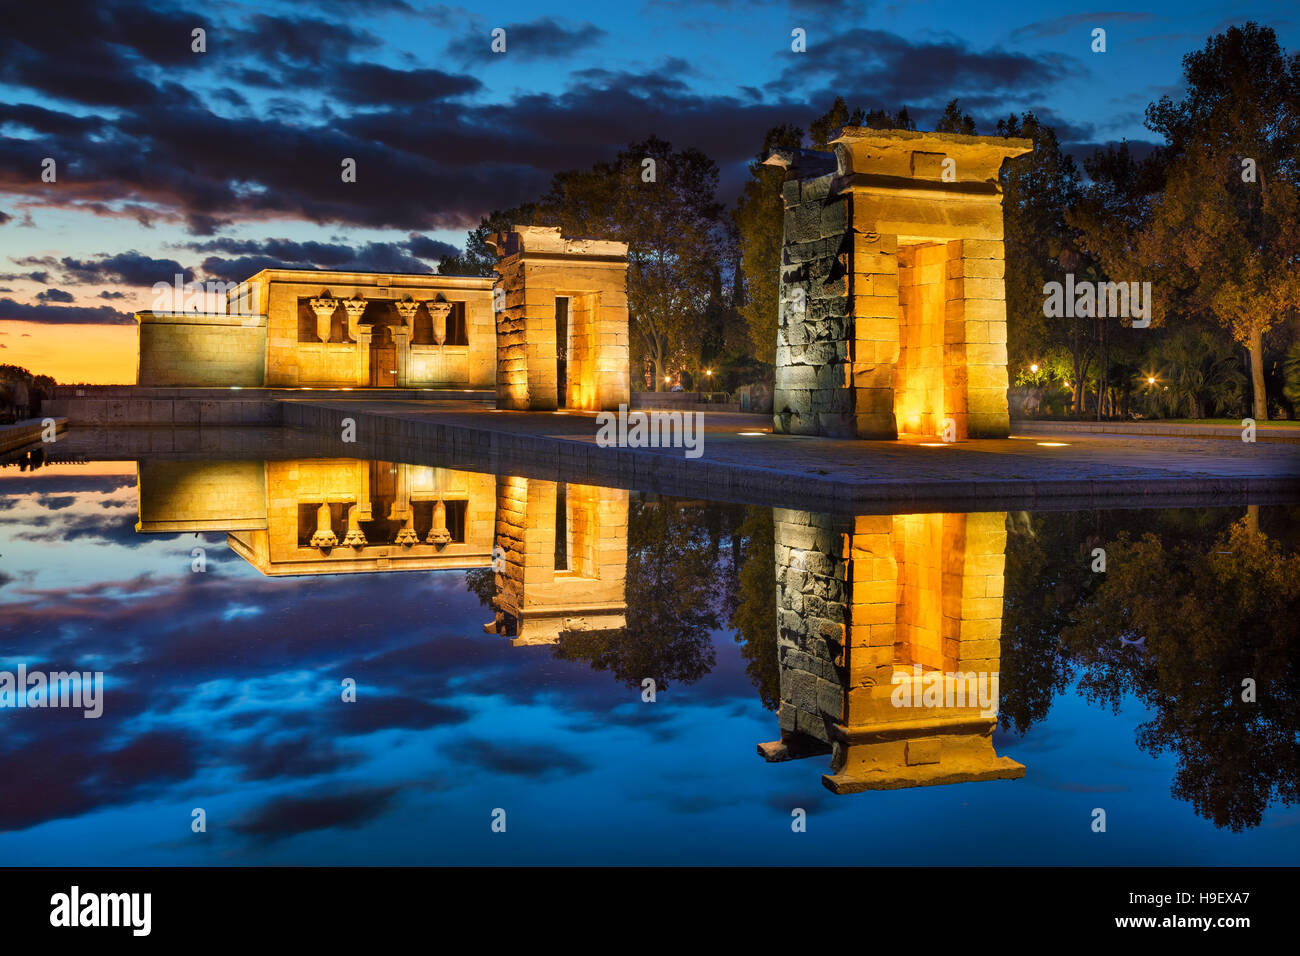 Madrid. Image of Temple of Debod in Madrid , Spain during sunset. Stock Photo